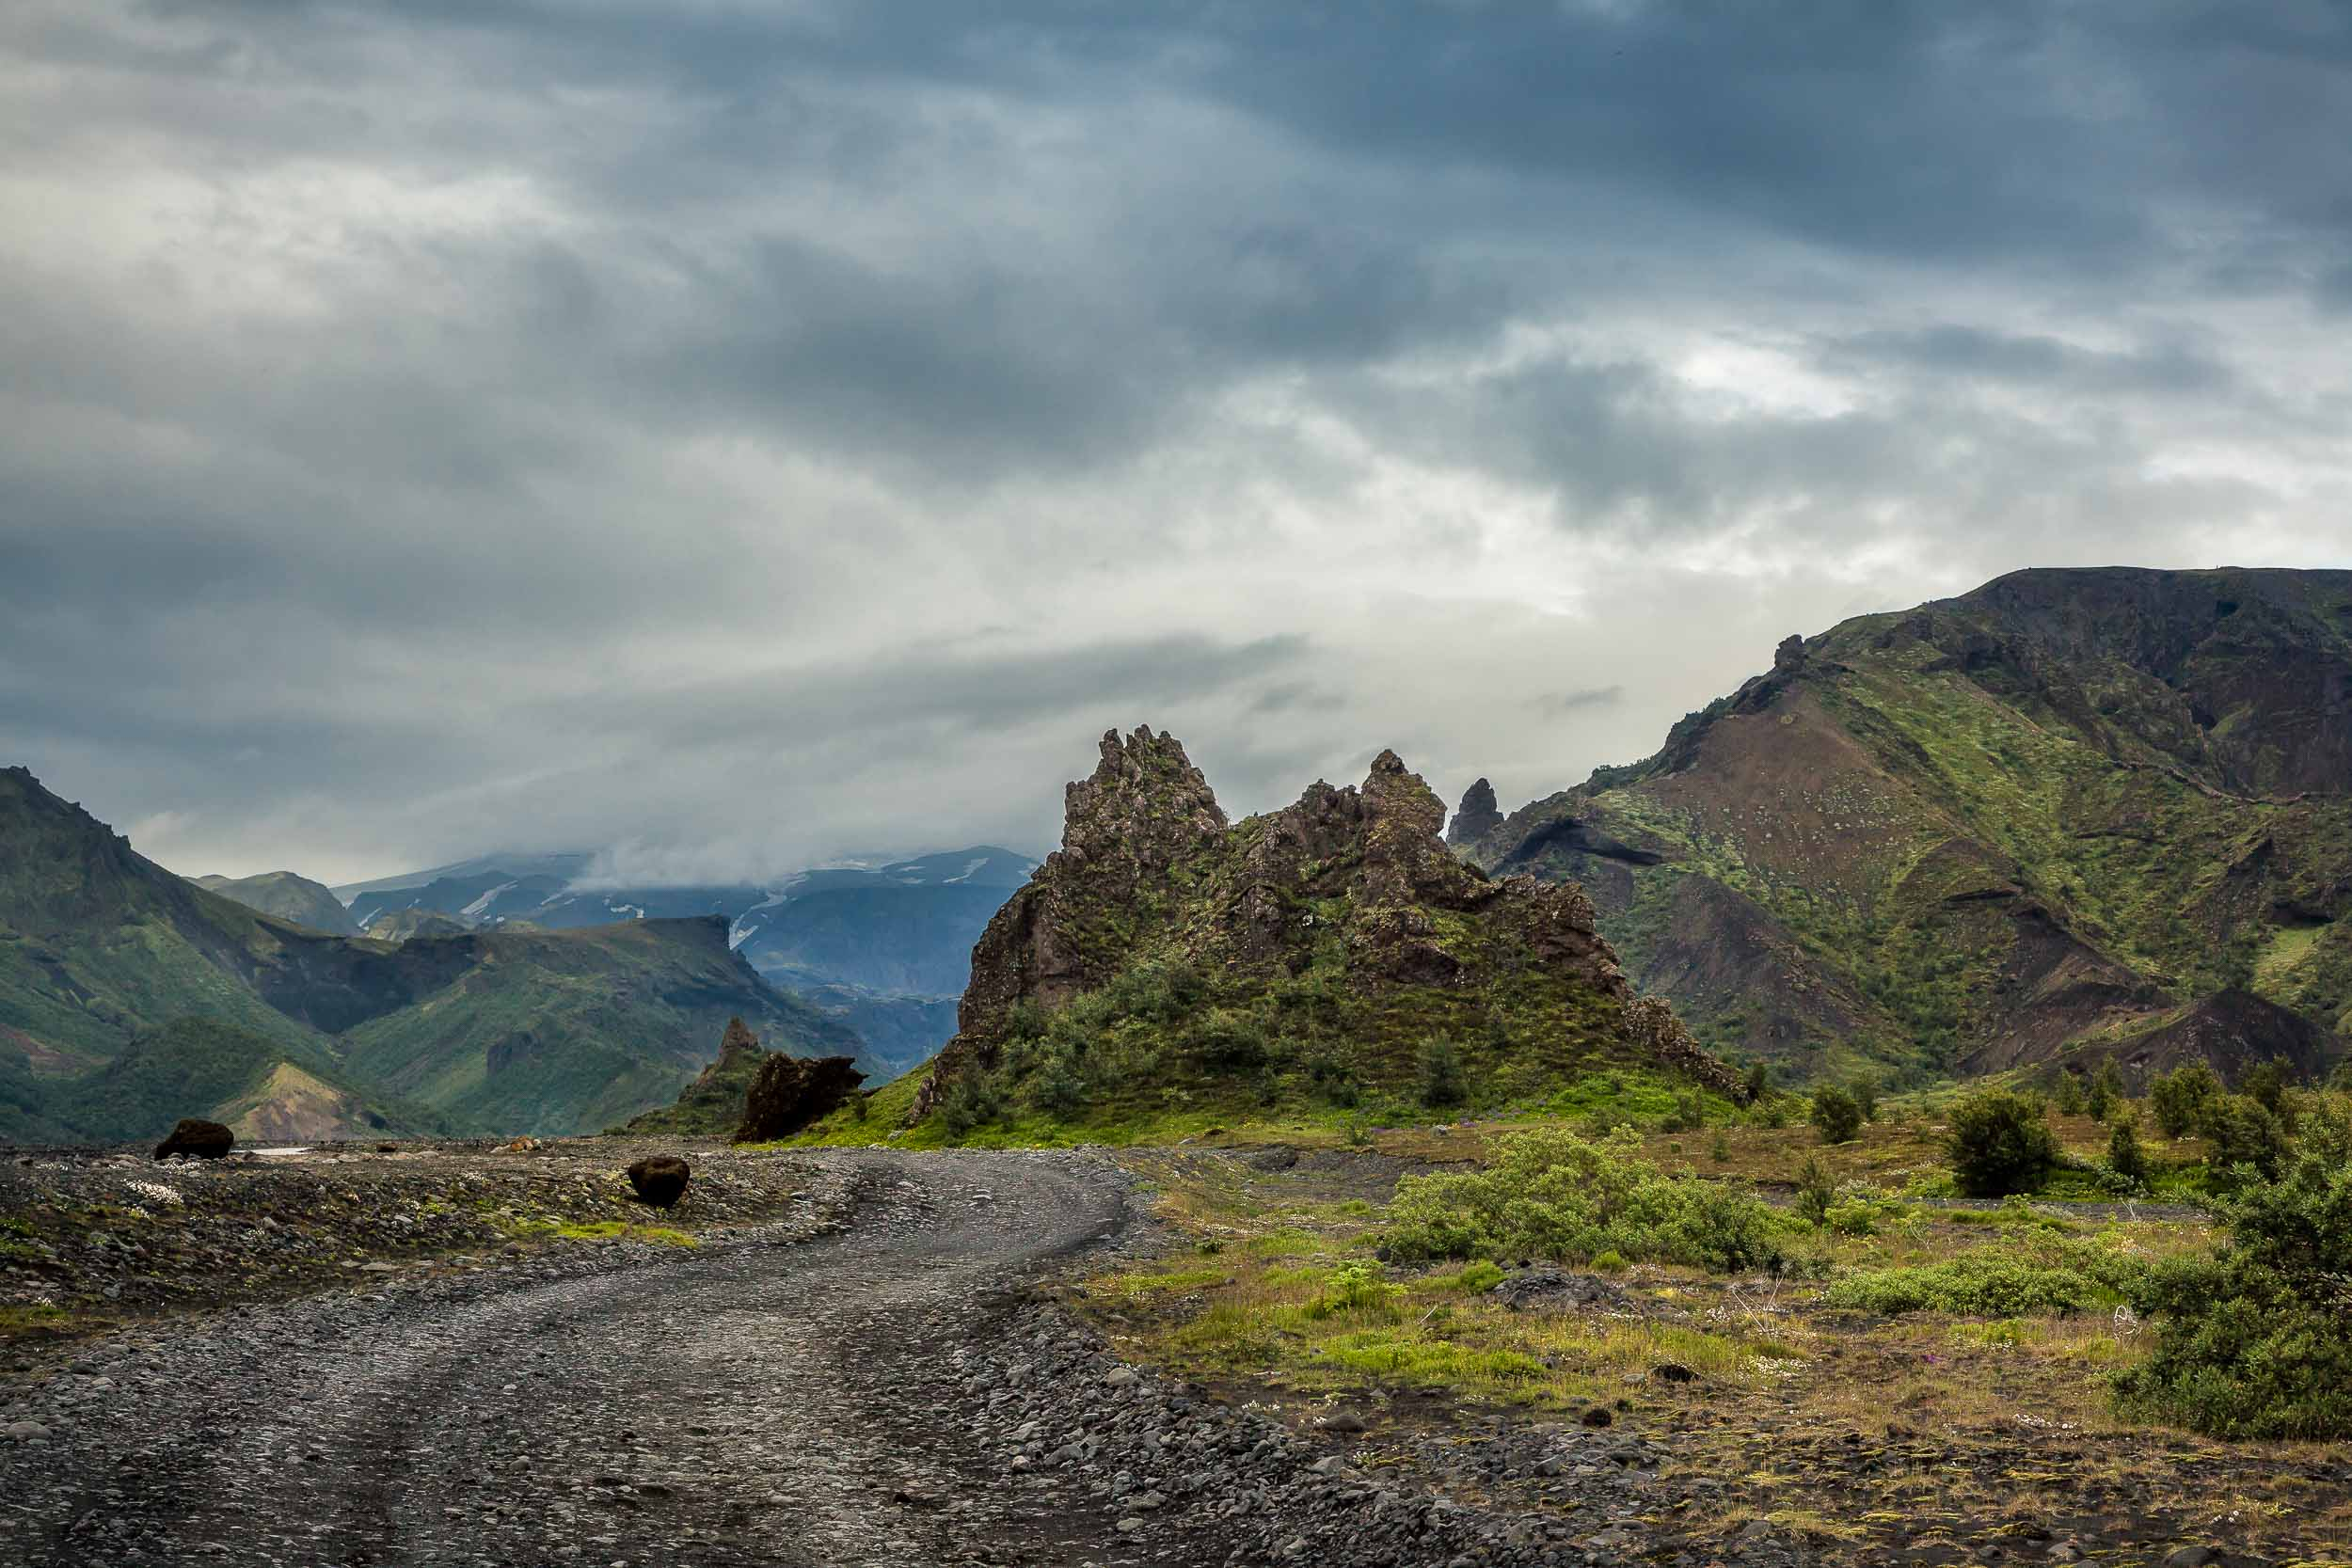 A    rough, stony road    marks my path through the    Highlands    region of Iceland.